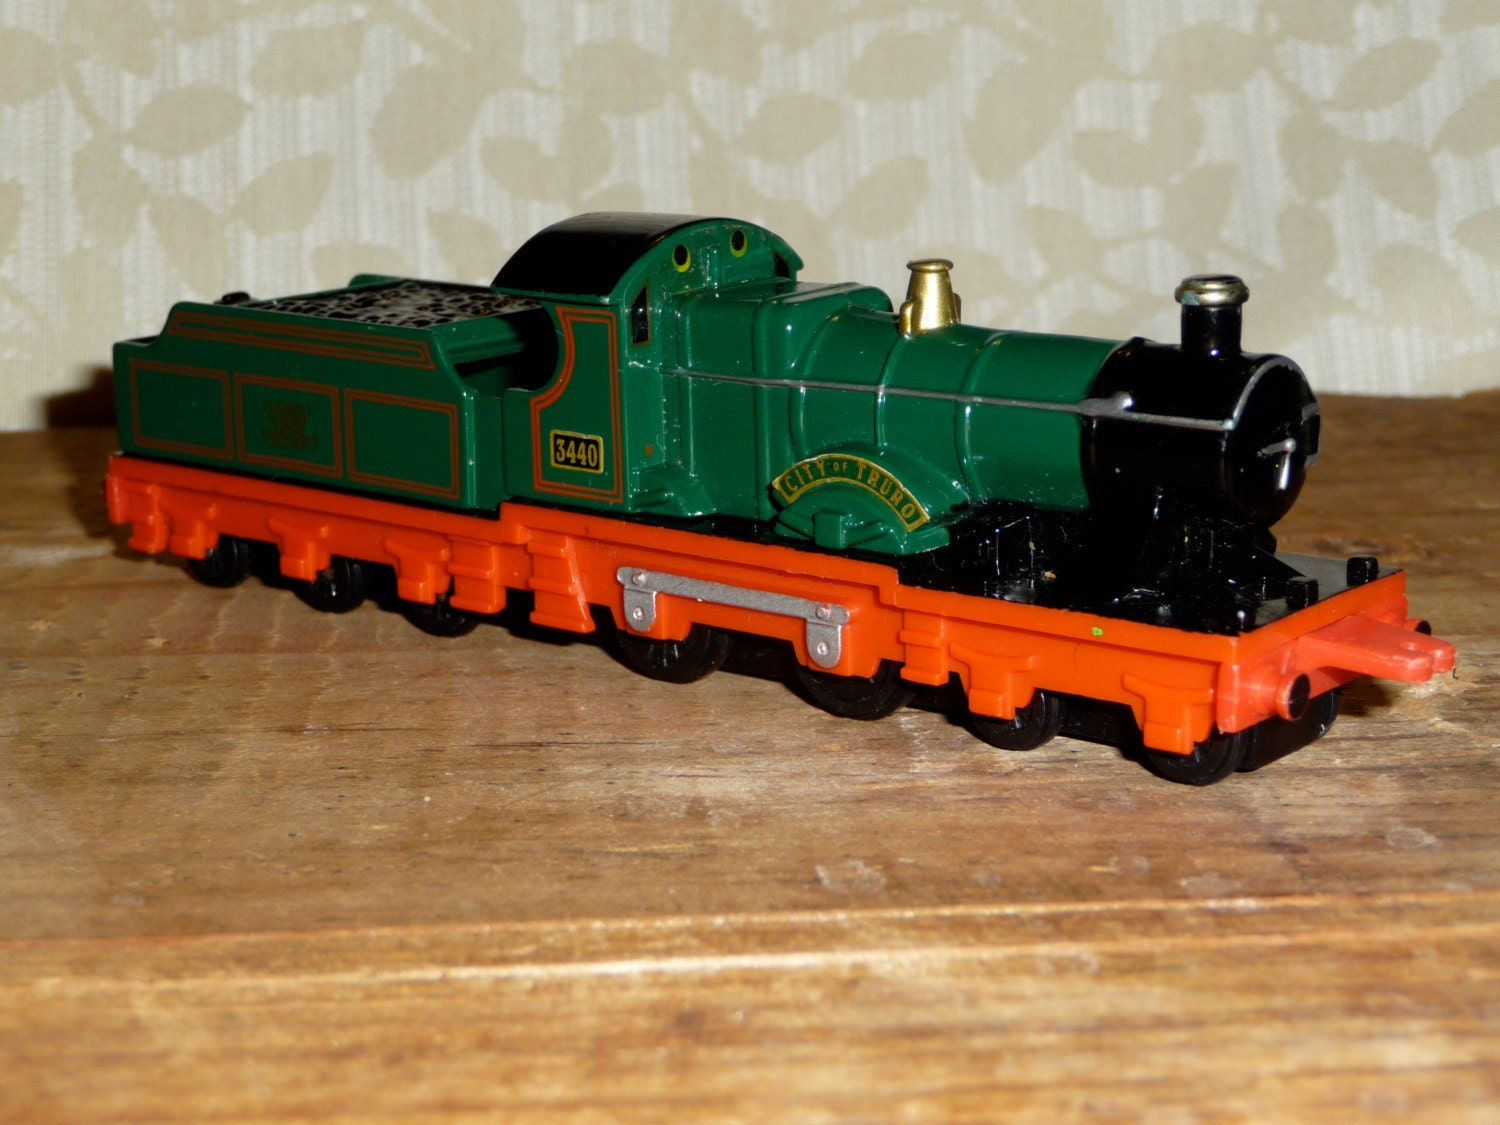 My ERTL Thomas the Tank Engine Collection - Vintage Metal ... |Thomas The Tank Engine Ertl